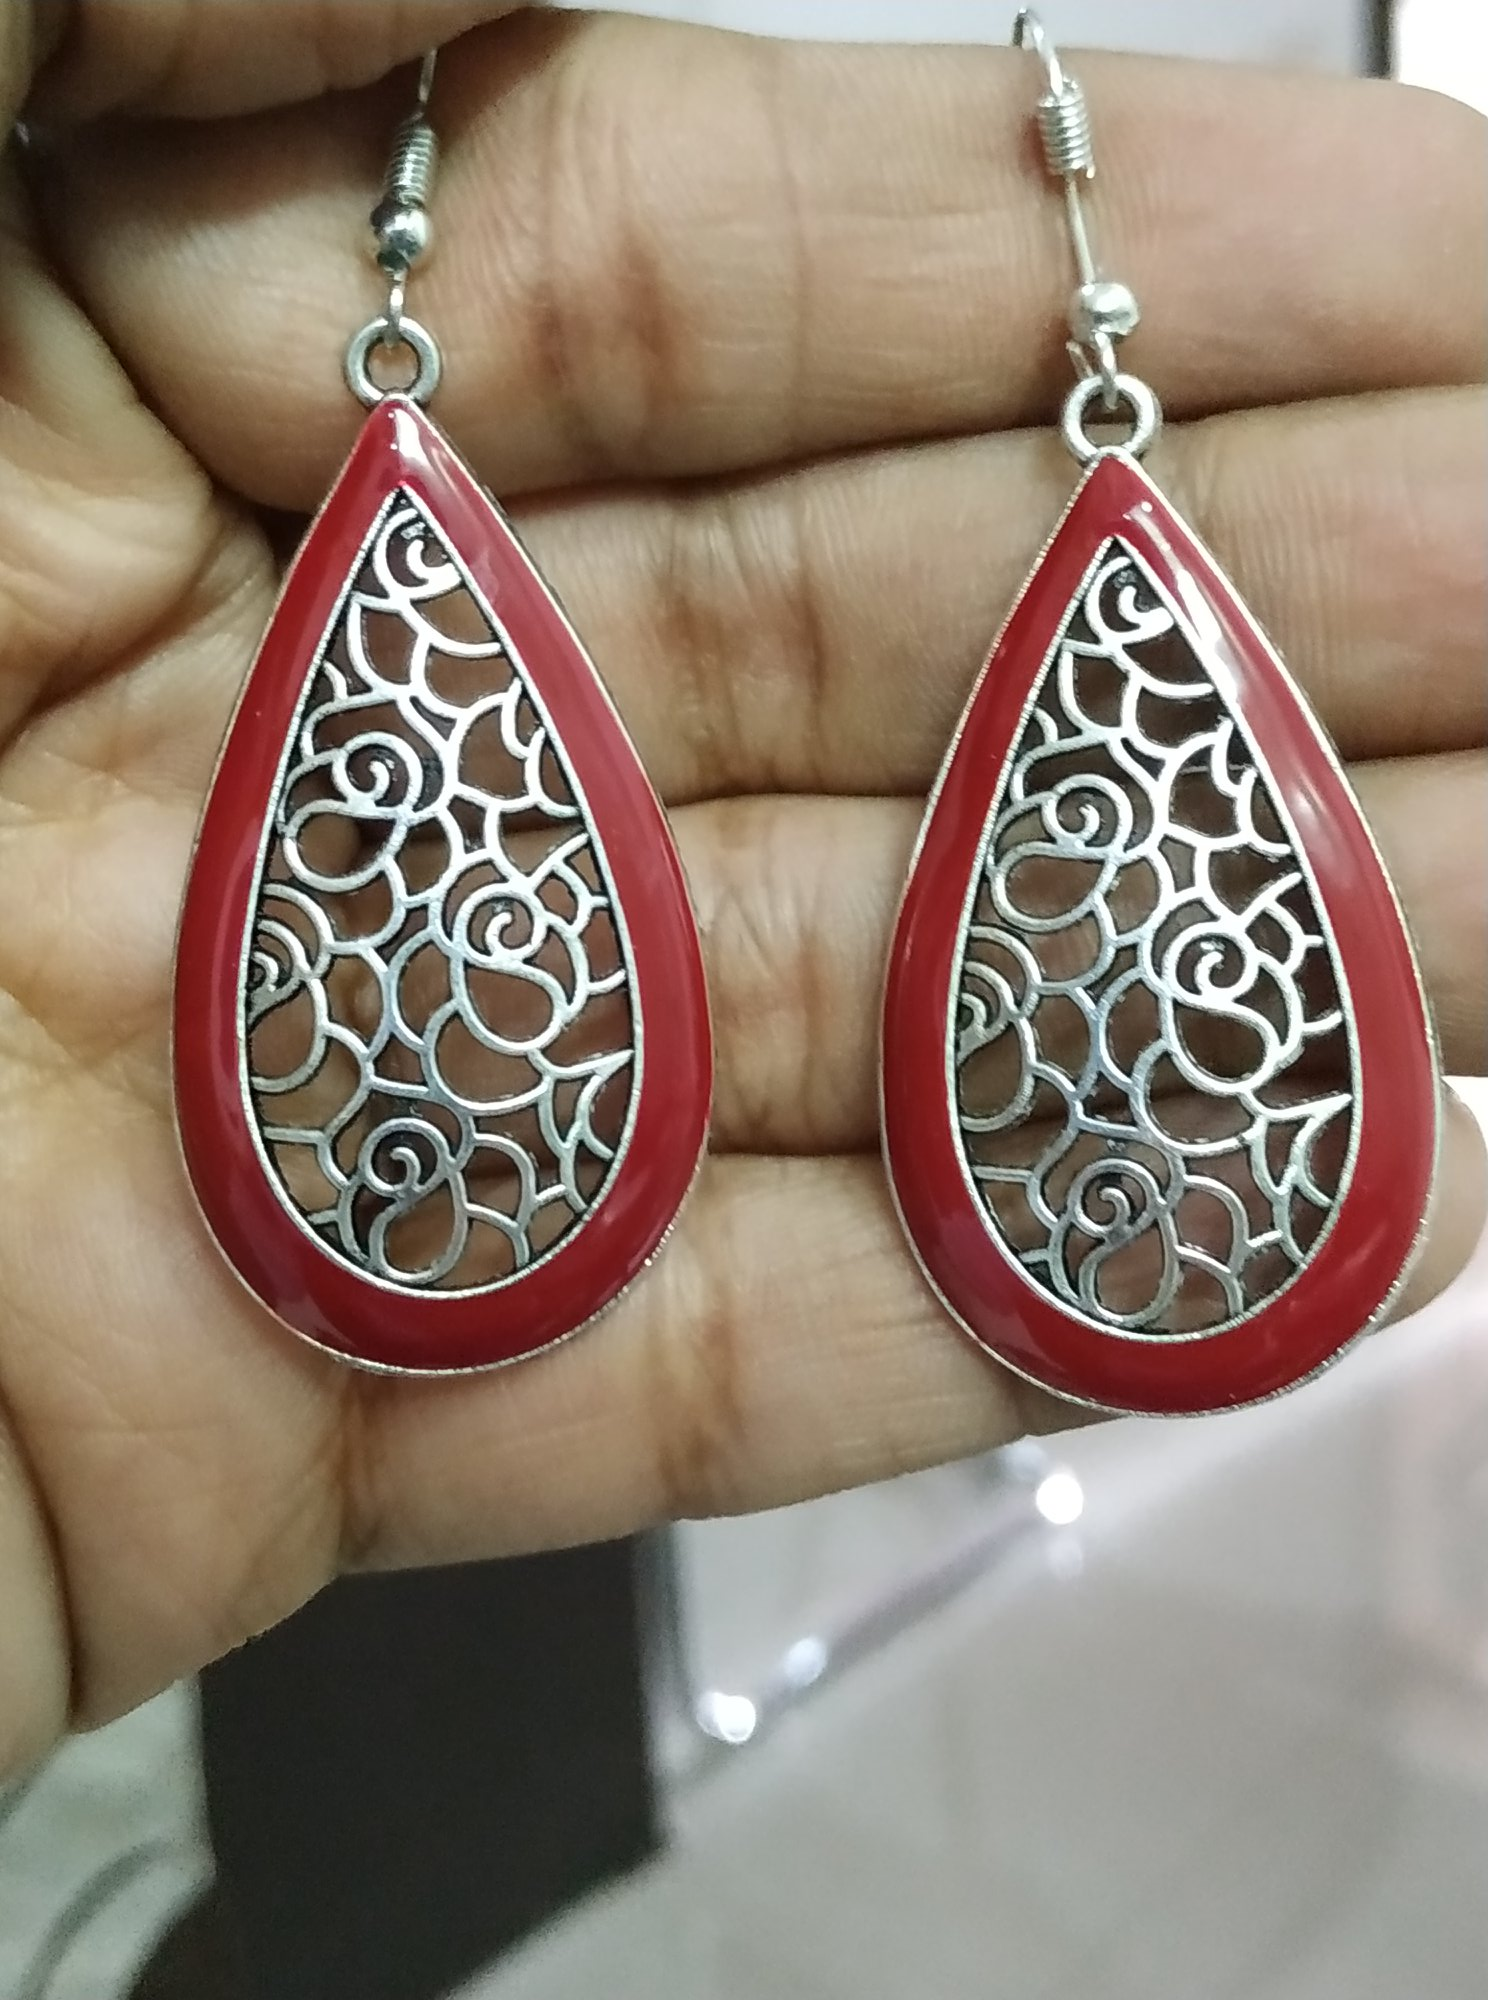 Fascinating Enamelled Earrings